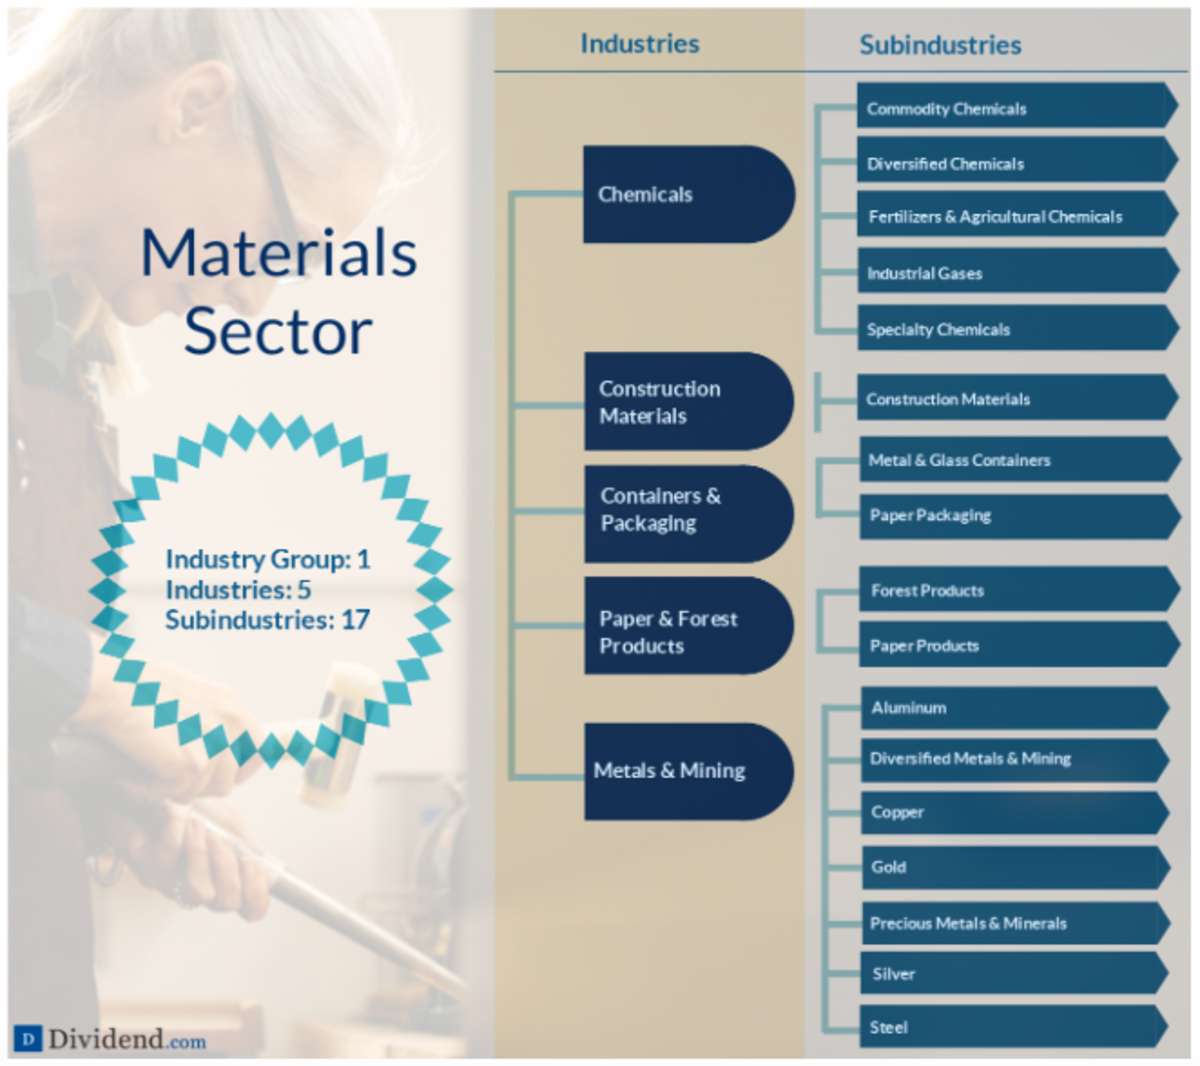 A detailed breakdown of the Materials sector (source: Dividend.com